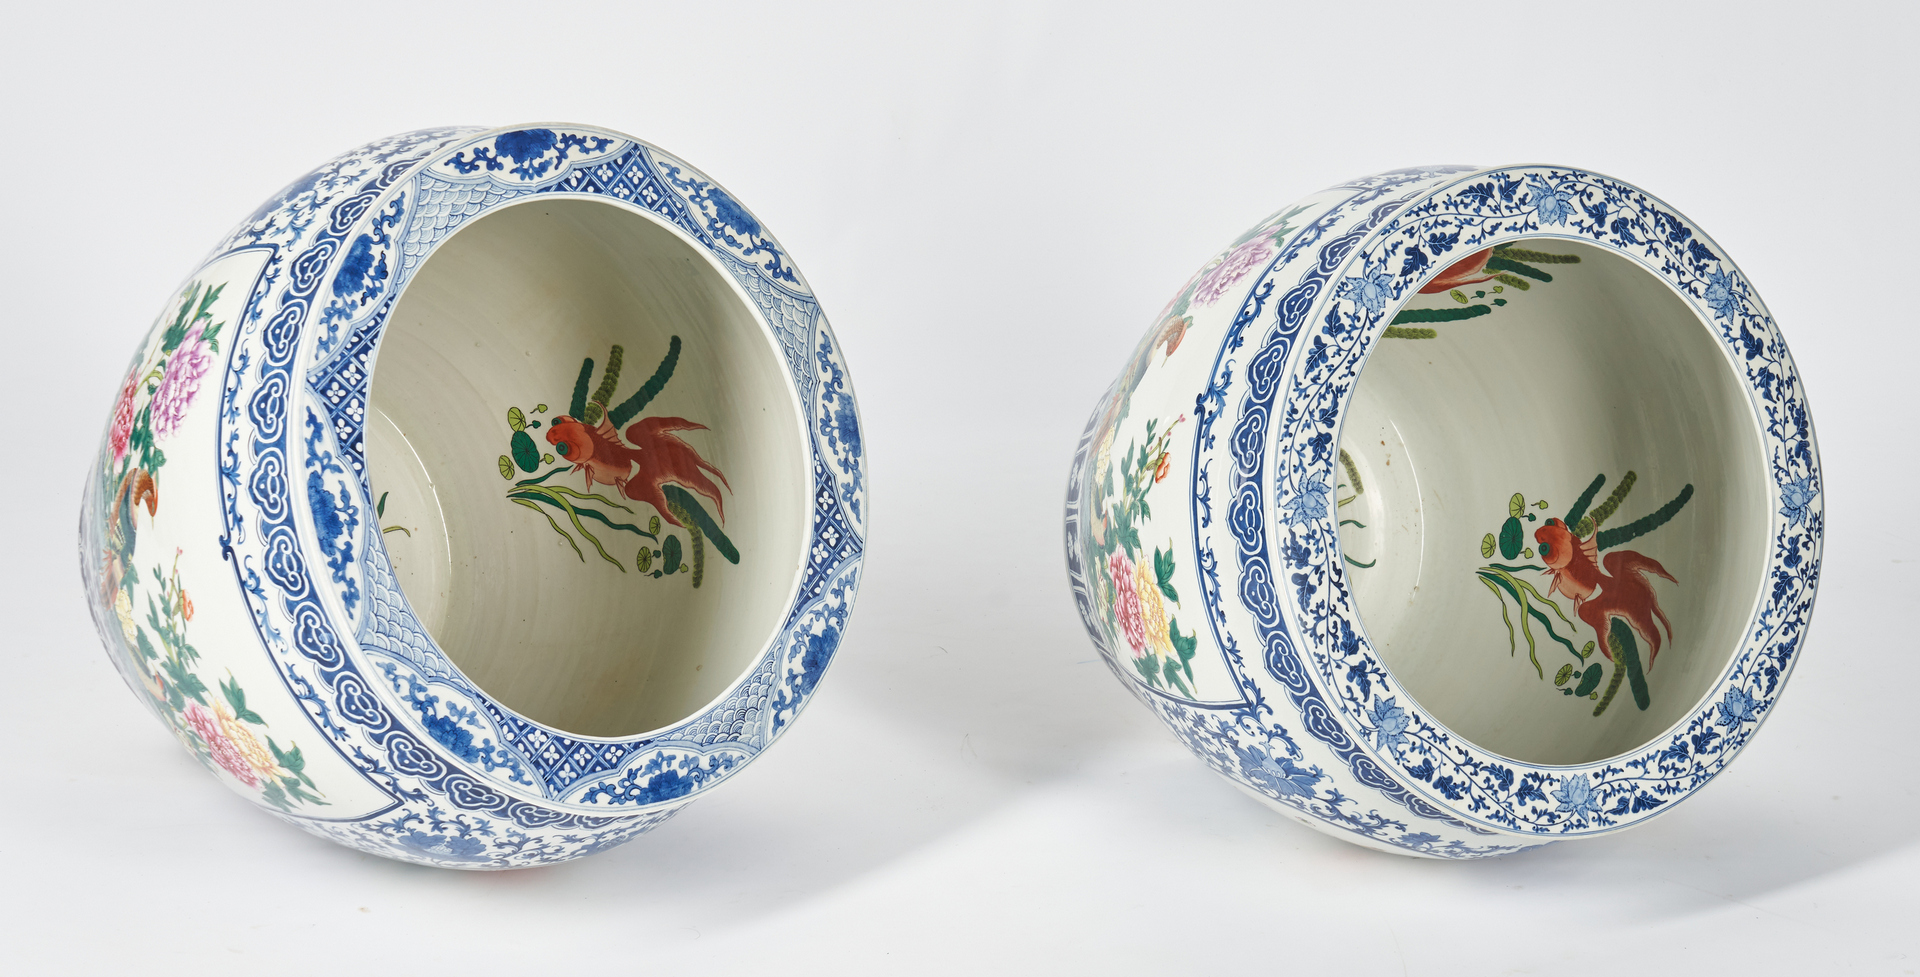 Lot 394: Near Pair of Blue and White Porcelain Fish Bowls